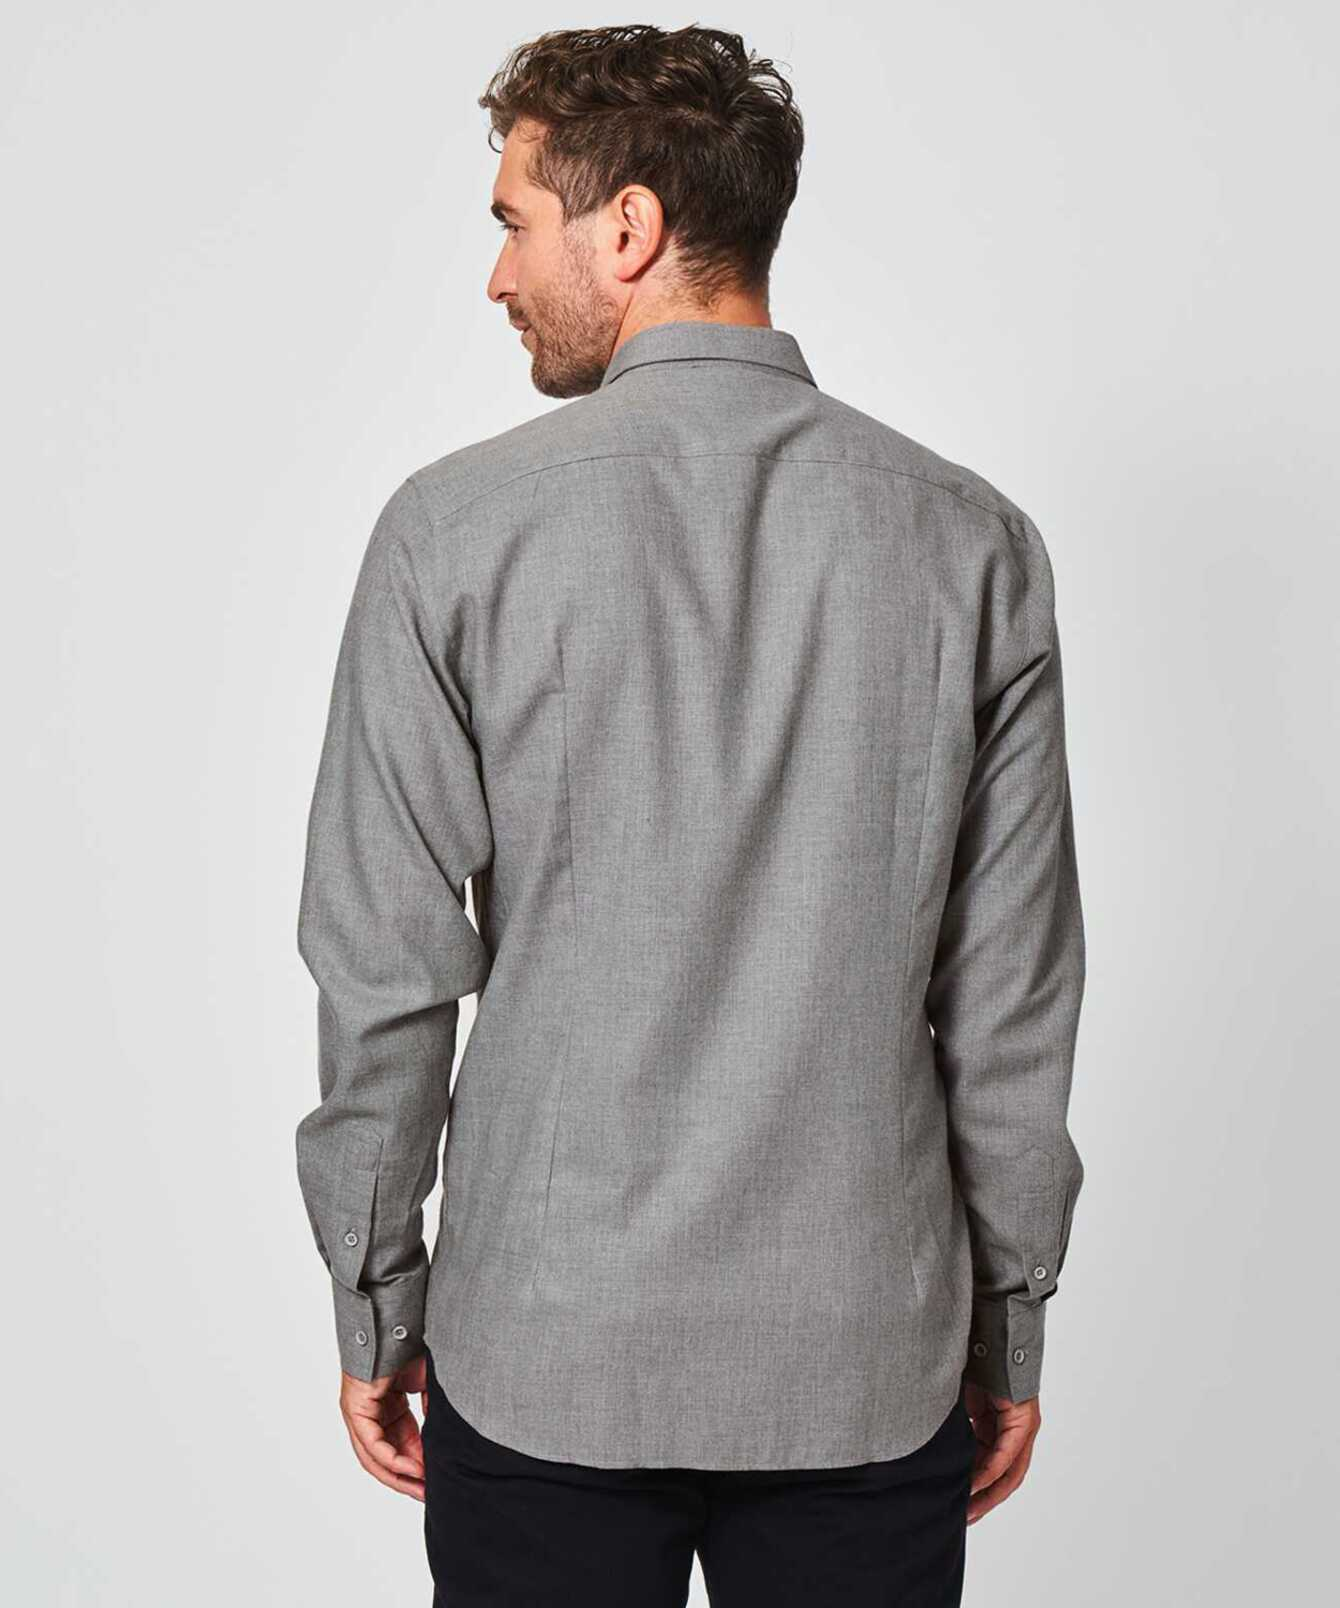 Shirt Costello light grey The Shirt Factory